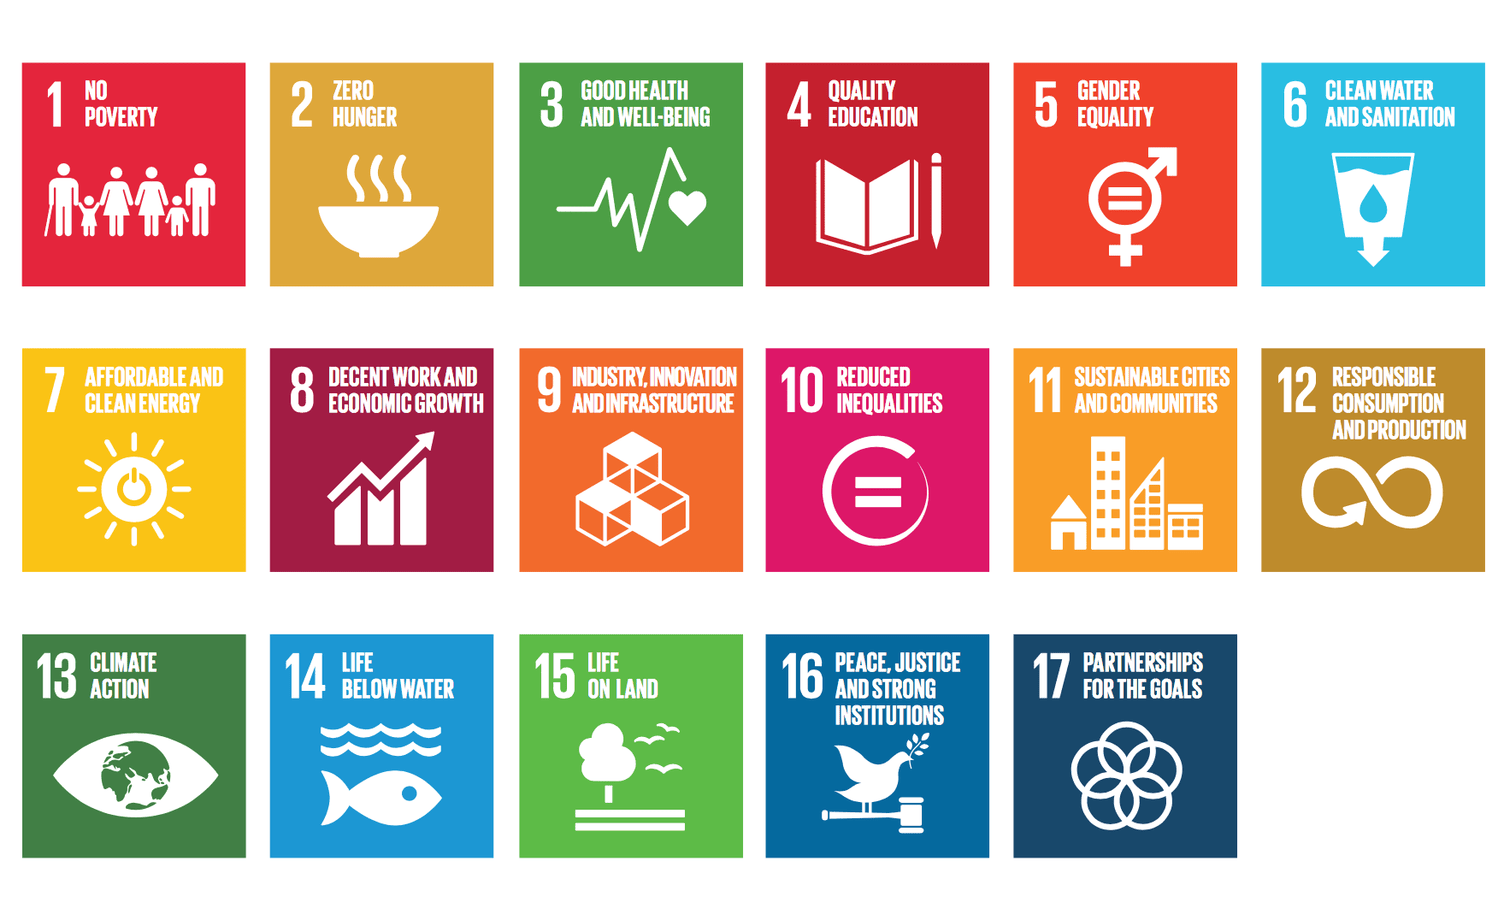 How does fashion affect the SDGs?